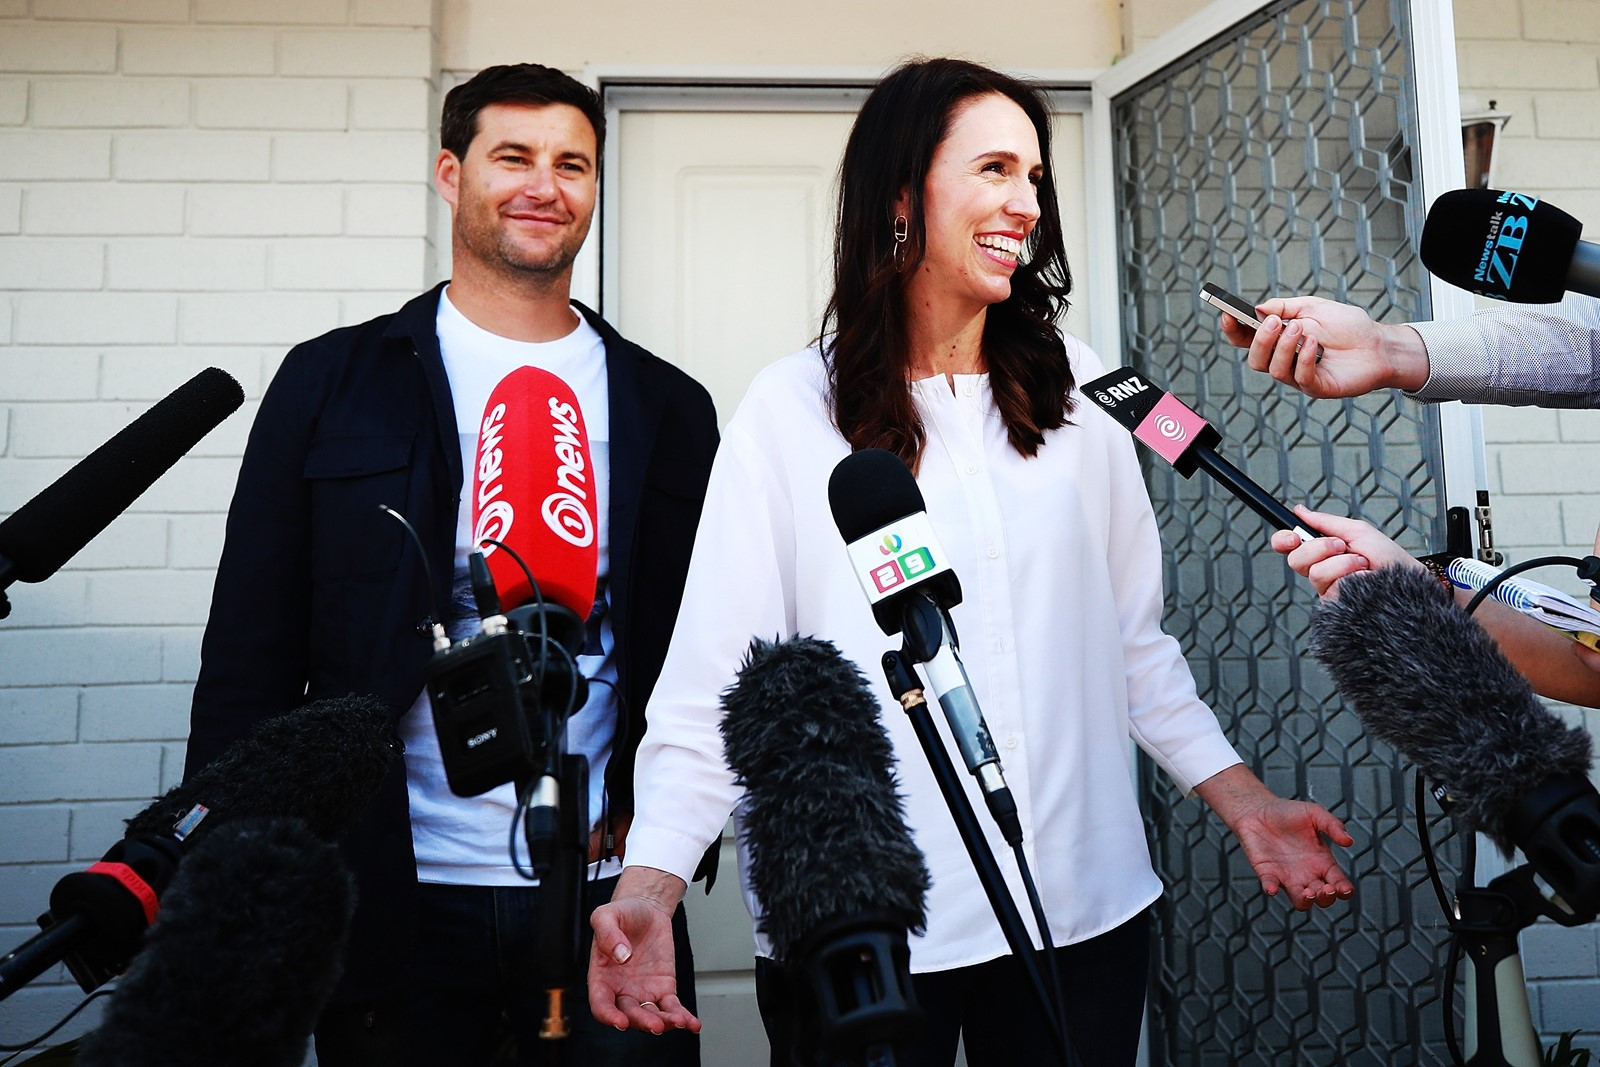 New Zealand Prime Minister Jacinda Ardern, 37, is the world's youngest female leader. At left is her life partner, television host Clarke Gayford. — Photograph: Hannah Peters/Getty Images.